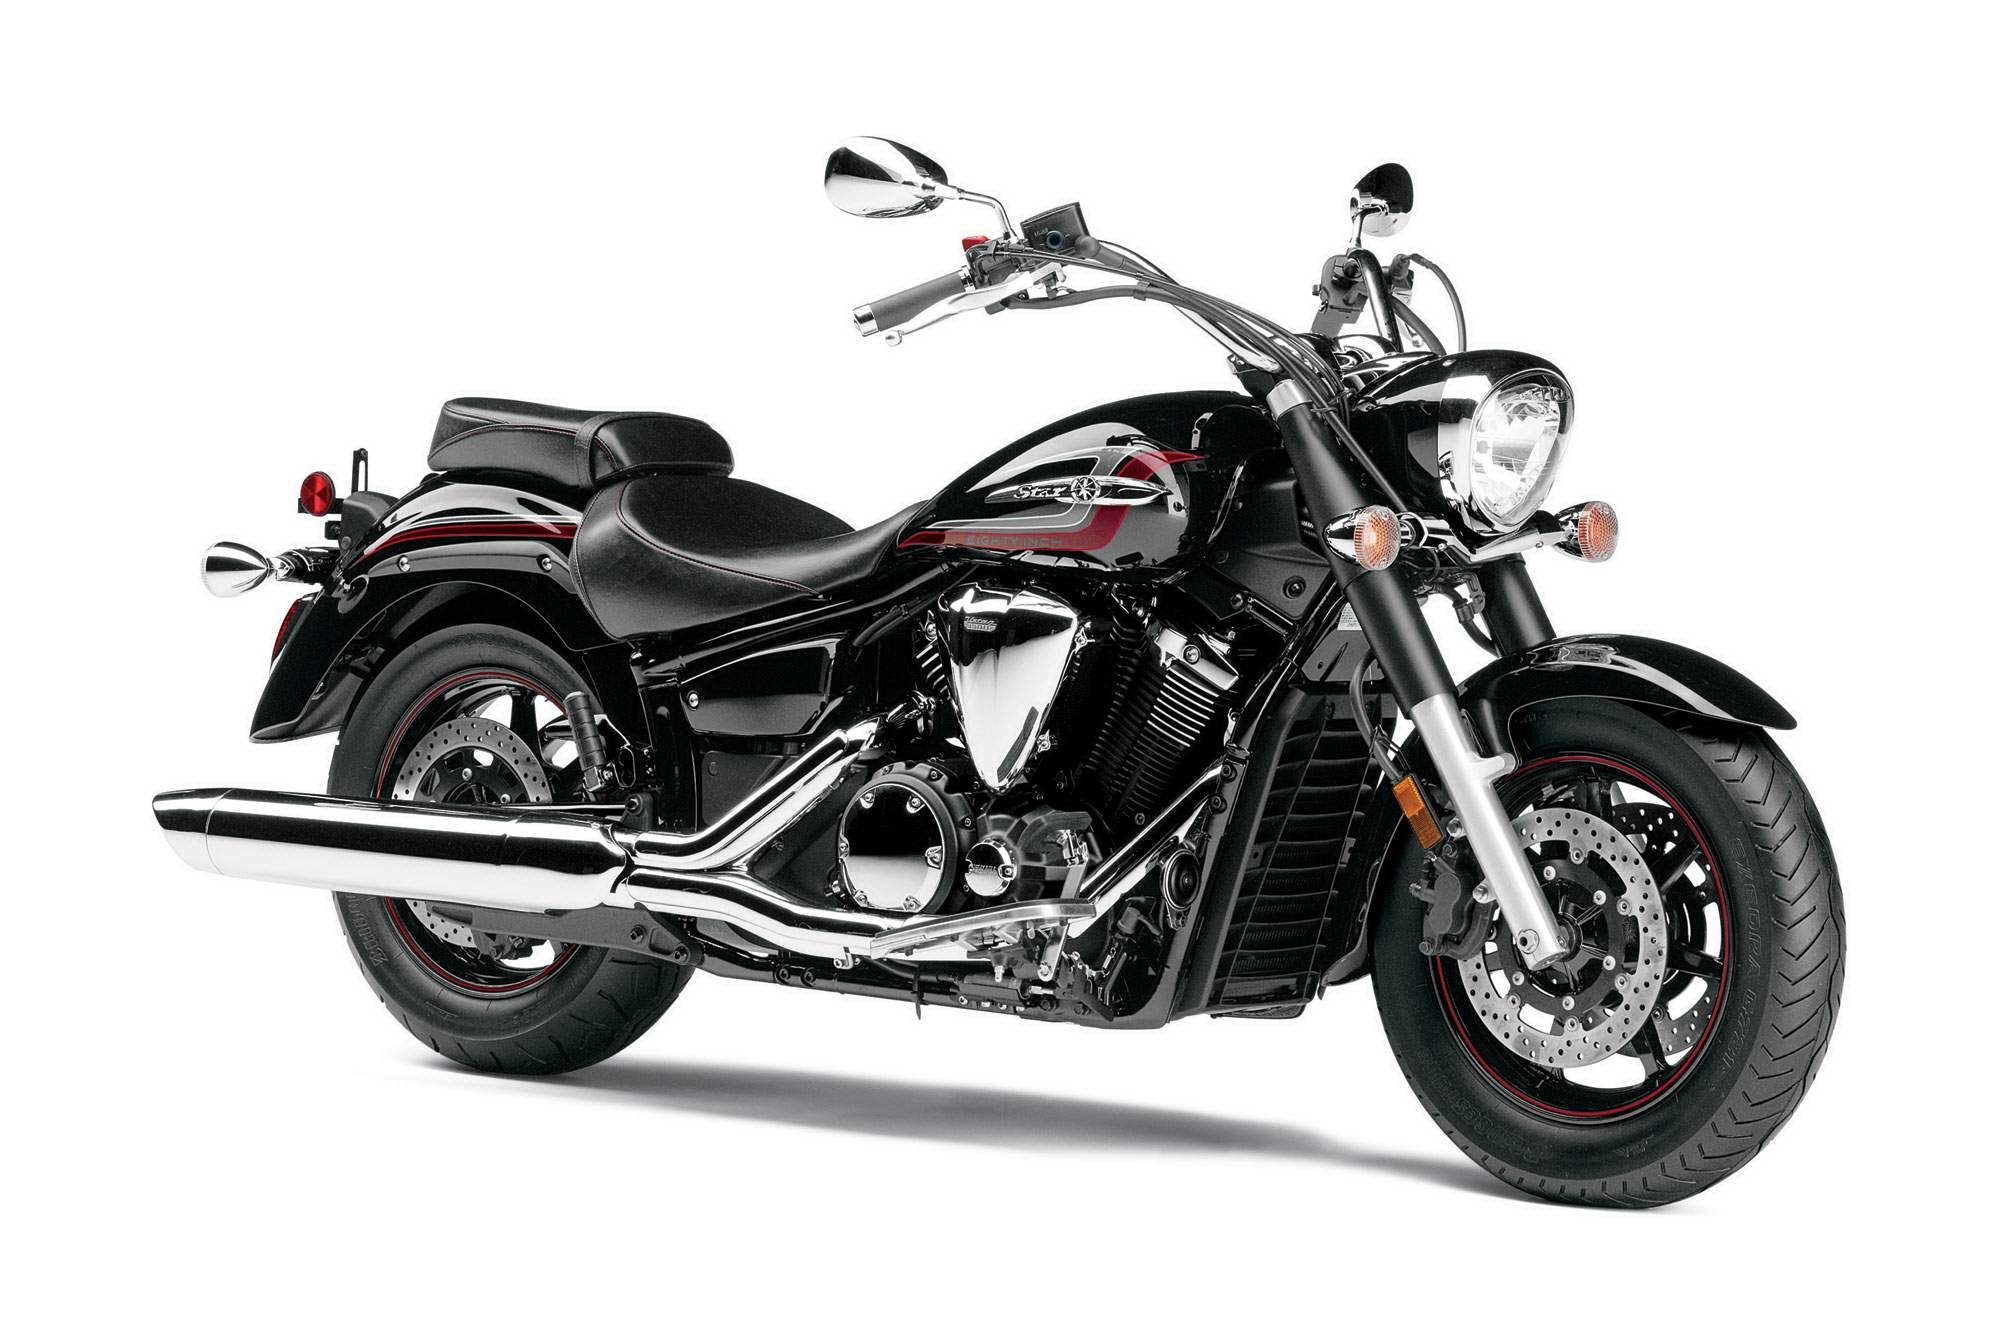 Мотоцикл Yamaha XVS 1300CT V-Star 2013